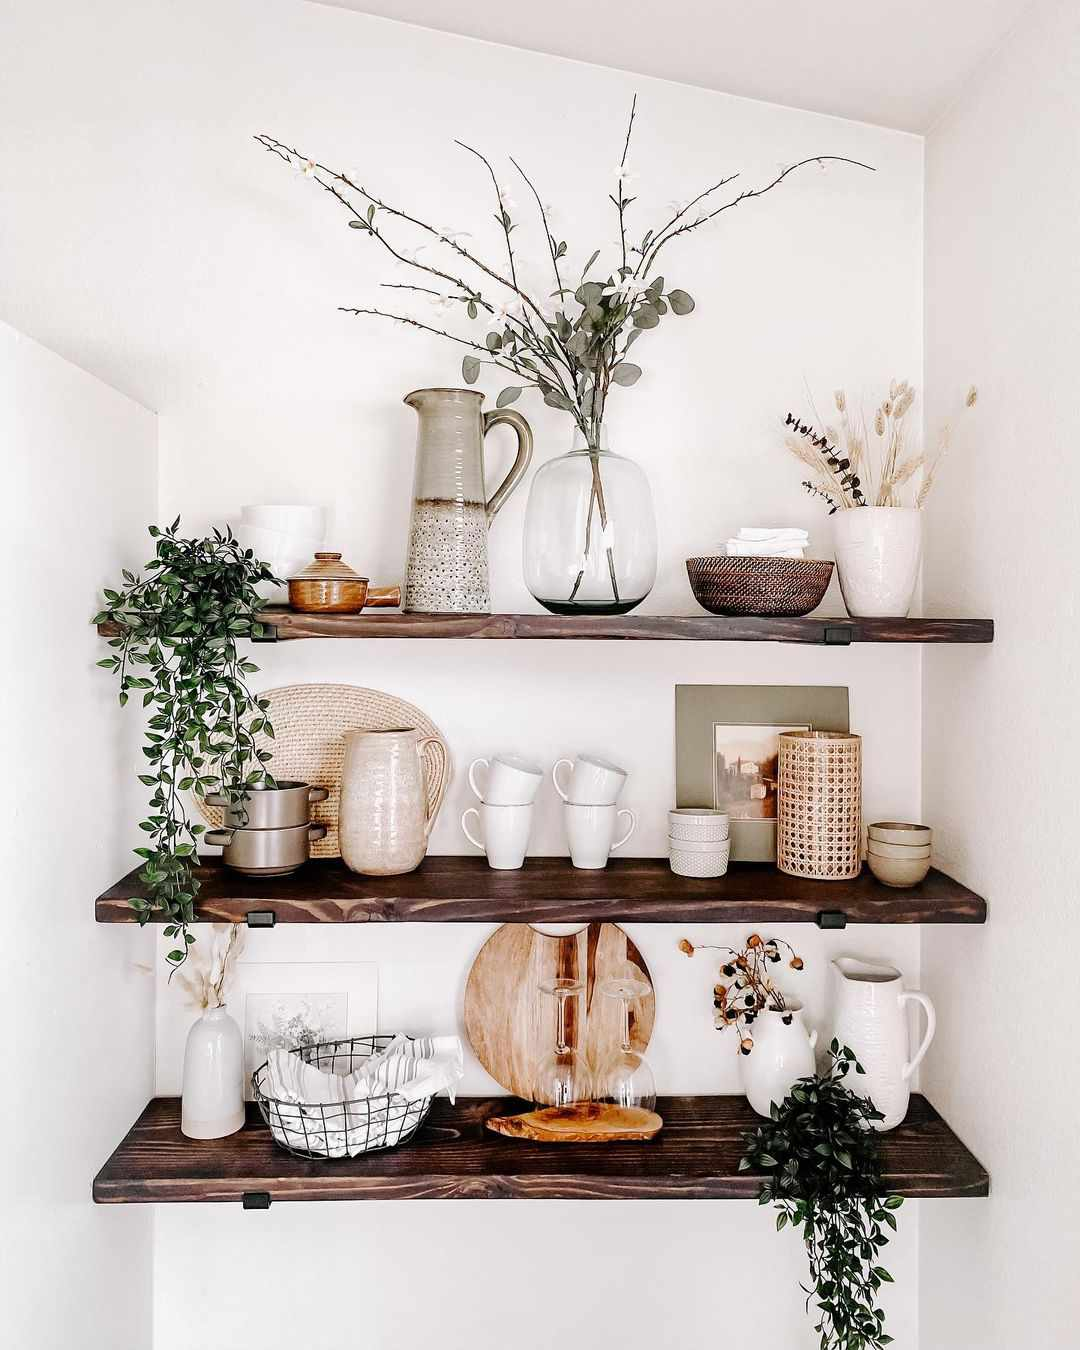 Open shelving with glassware.